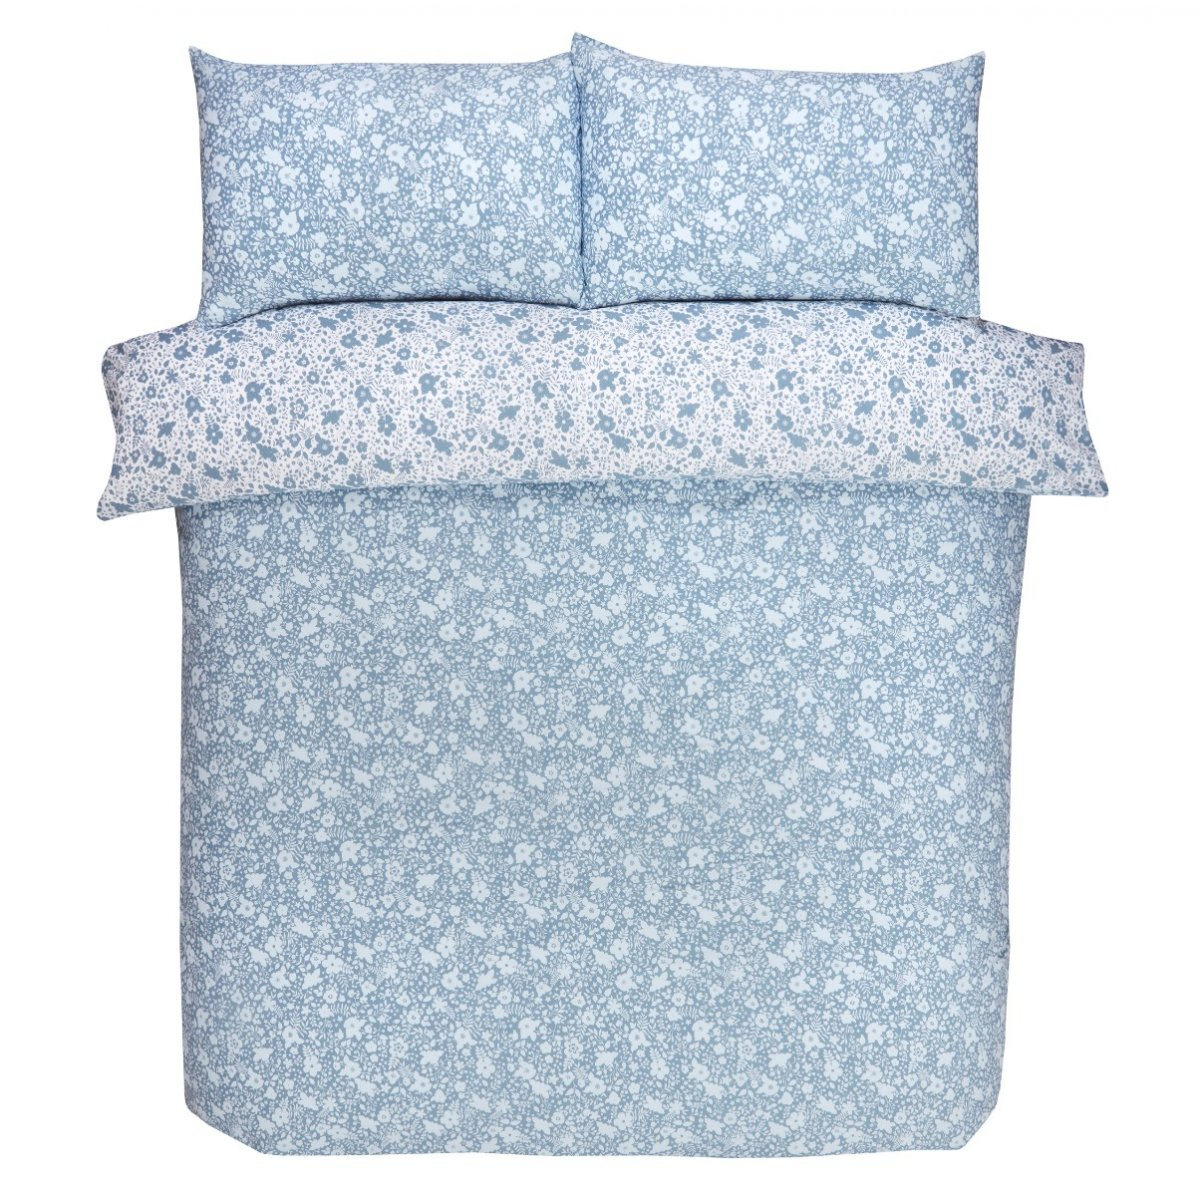 Ditsy Floral Bedding - Reversible Duvet Cover and Pillowcase Set